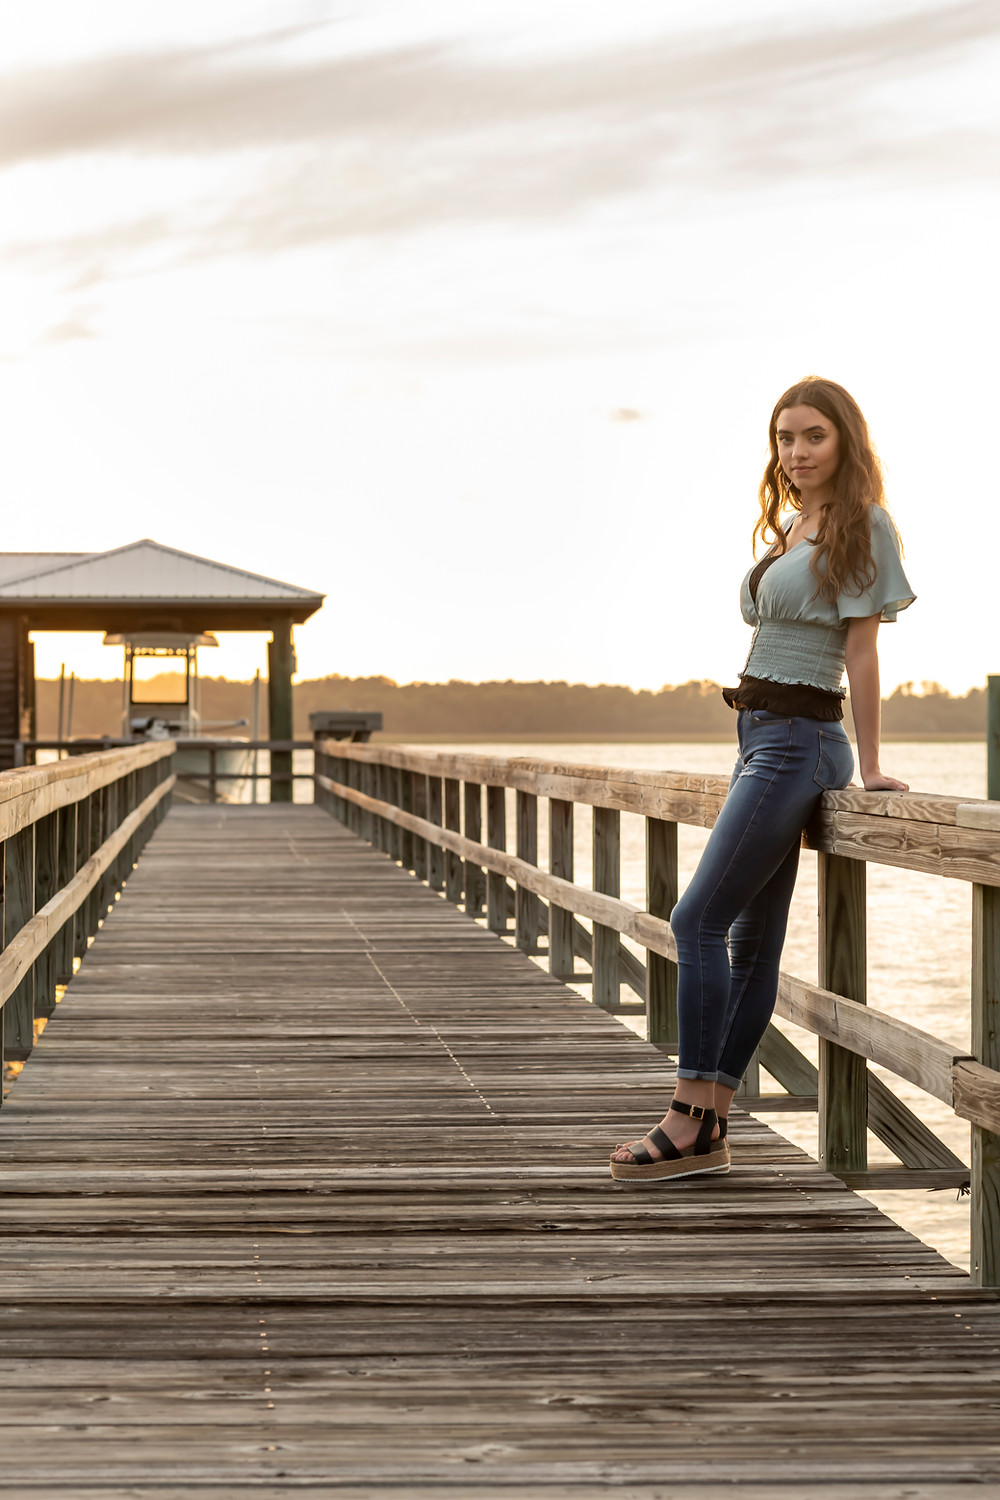 Alex's senior portrait session for Savannah's Islands High School